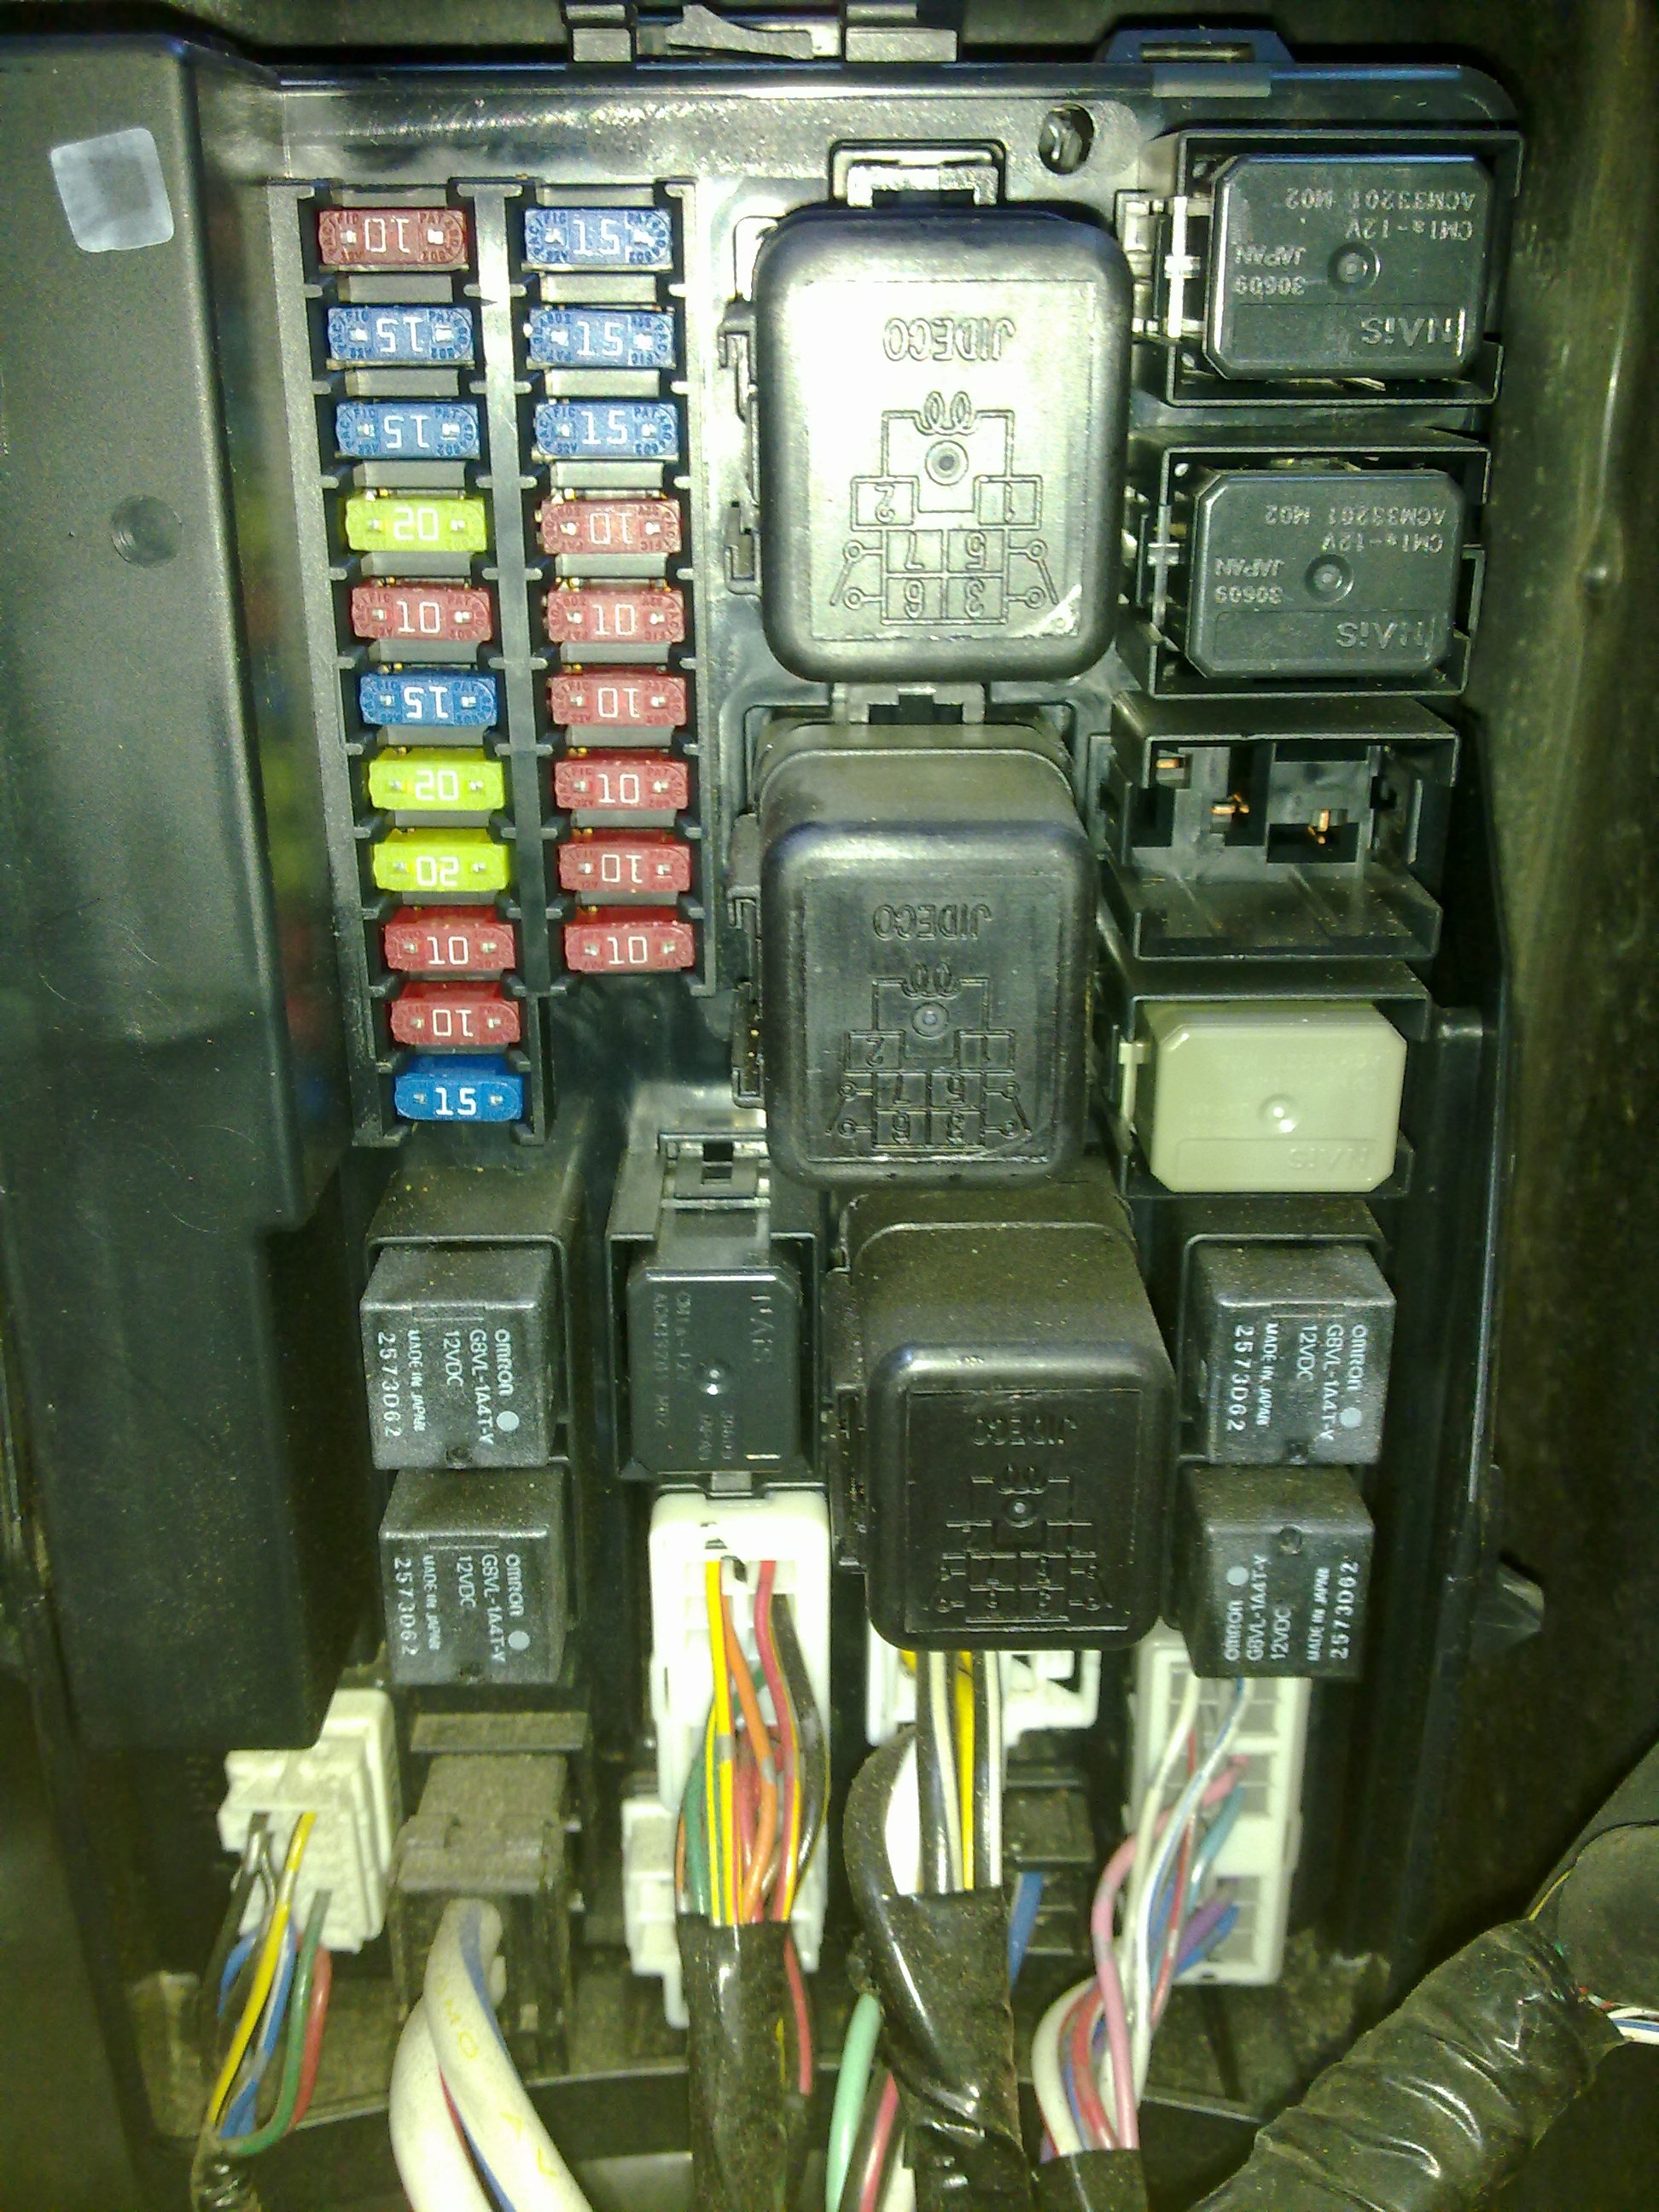 G35 Fuse Box Location Wiring Library Infiniti G25 2007 Headlight Electrical Post 71983 1285378271 Thumb